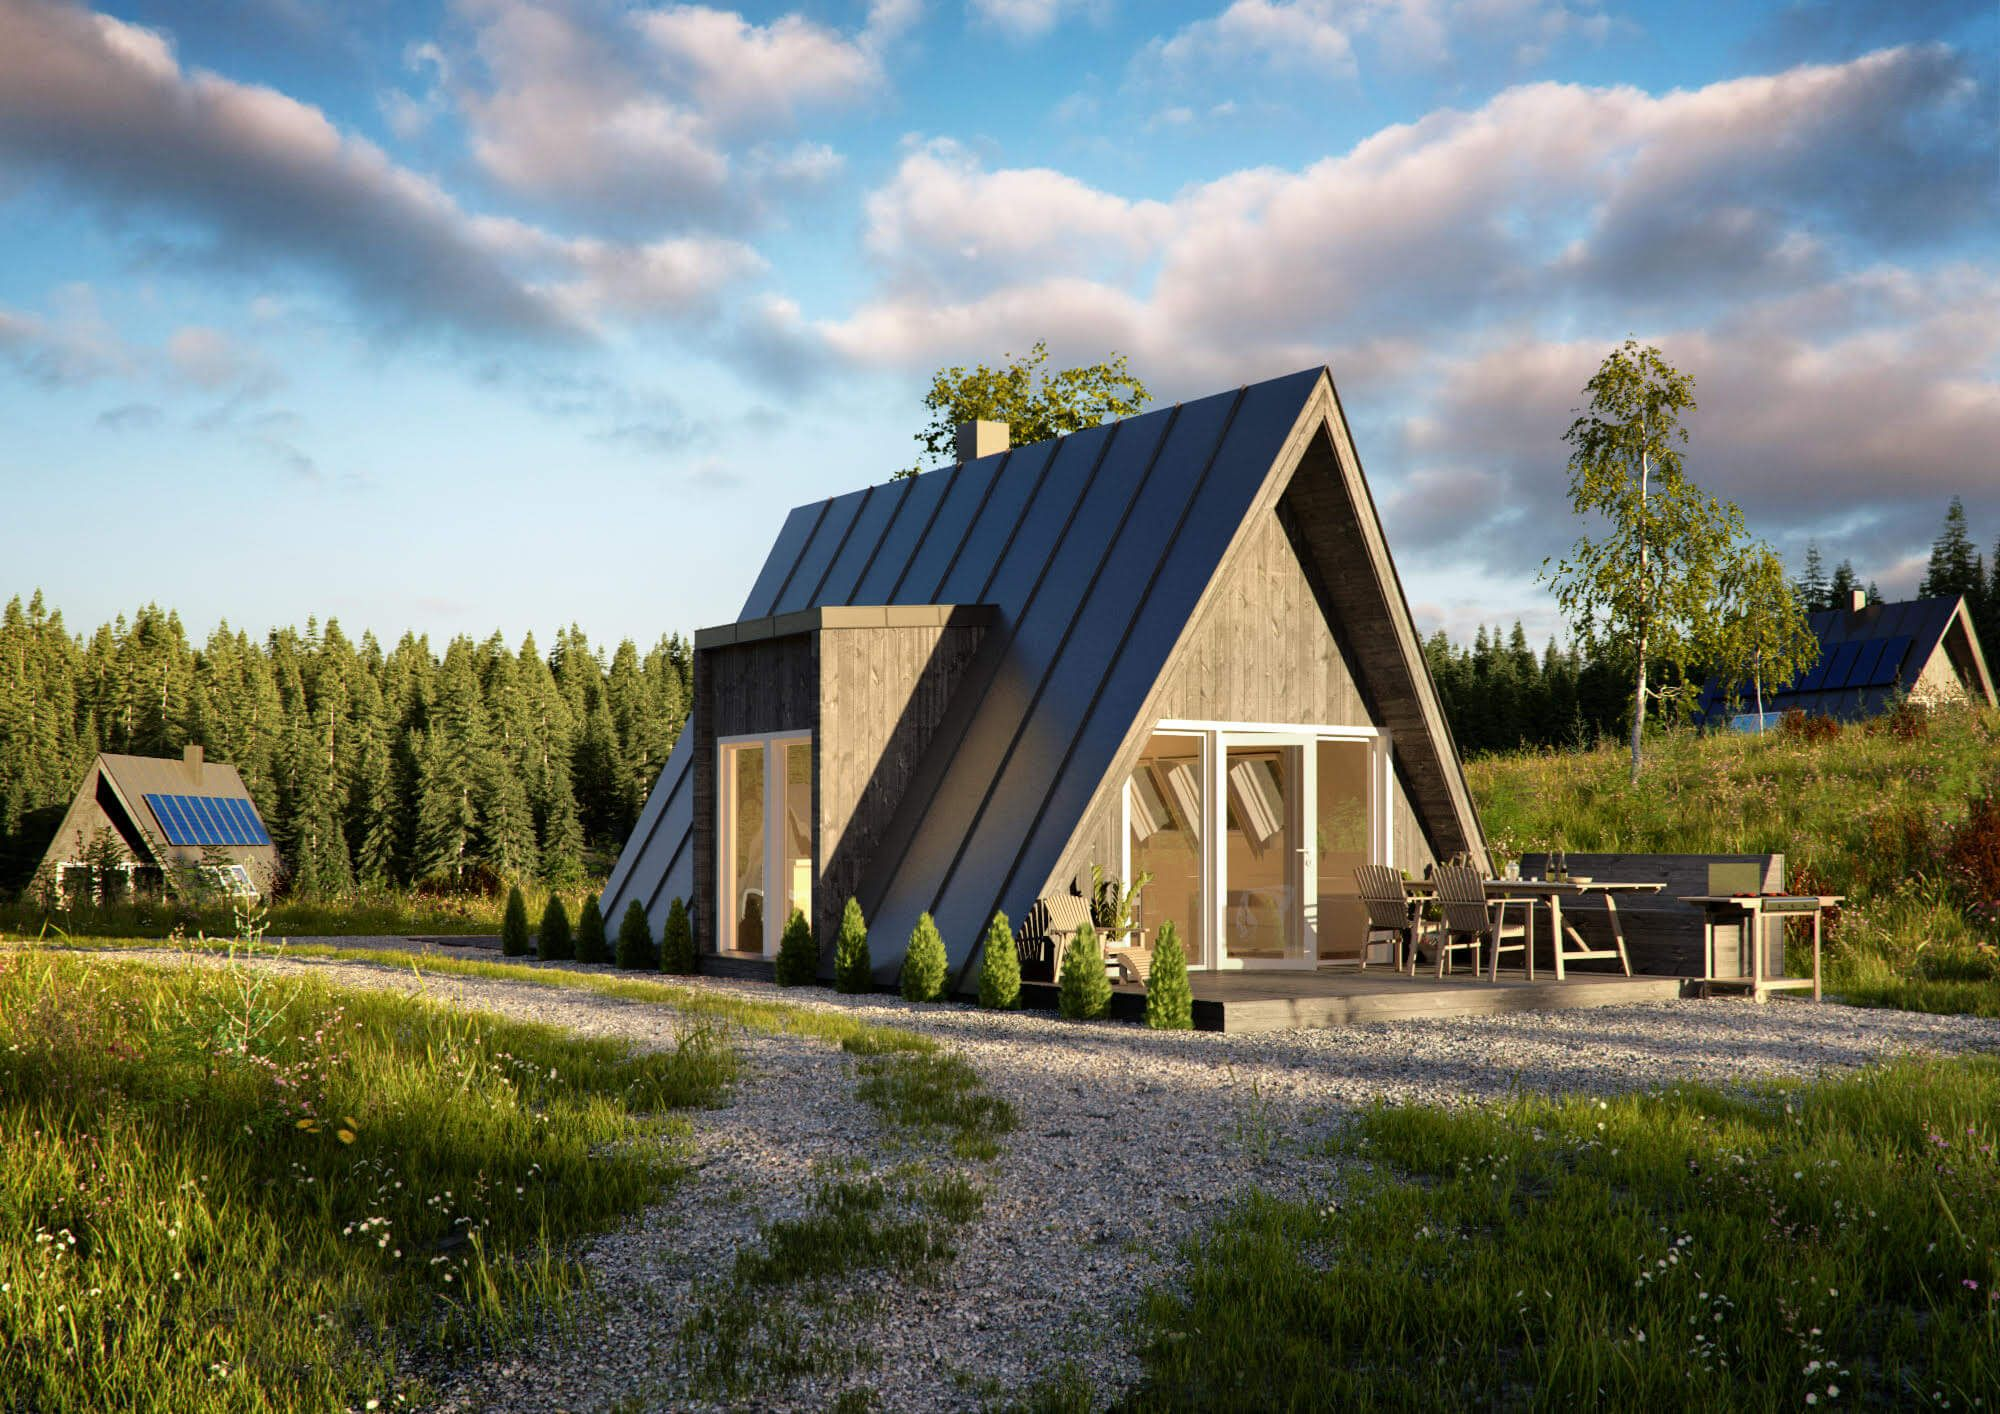 Affordable Housing With -frame Kit Homes Retreat In